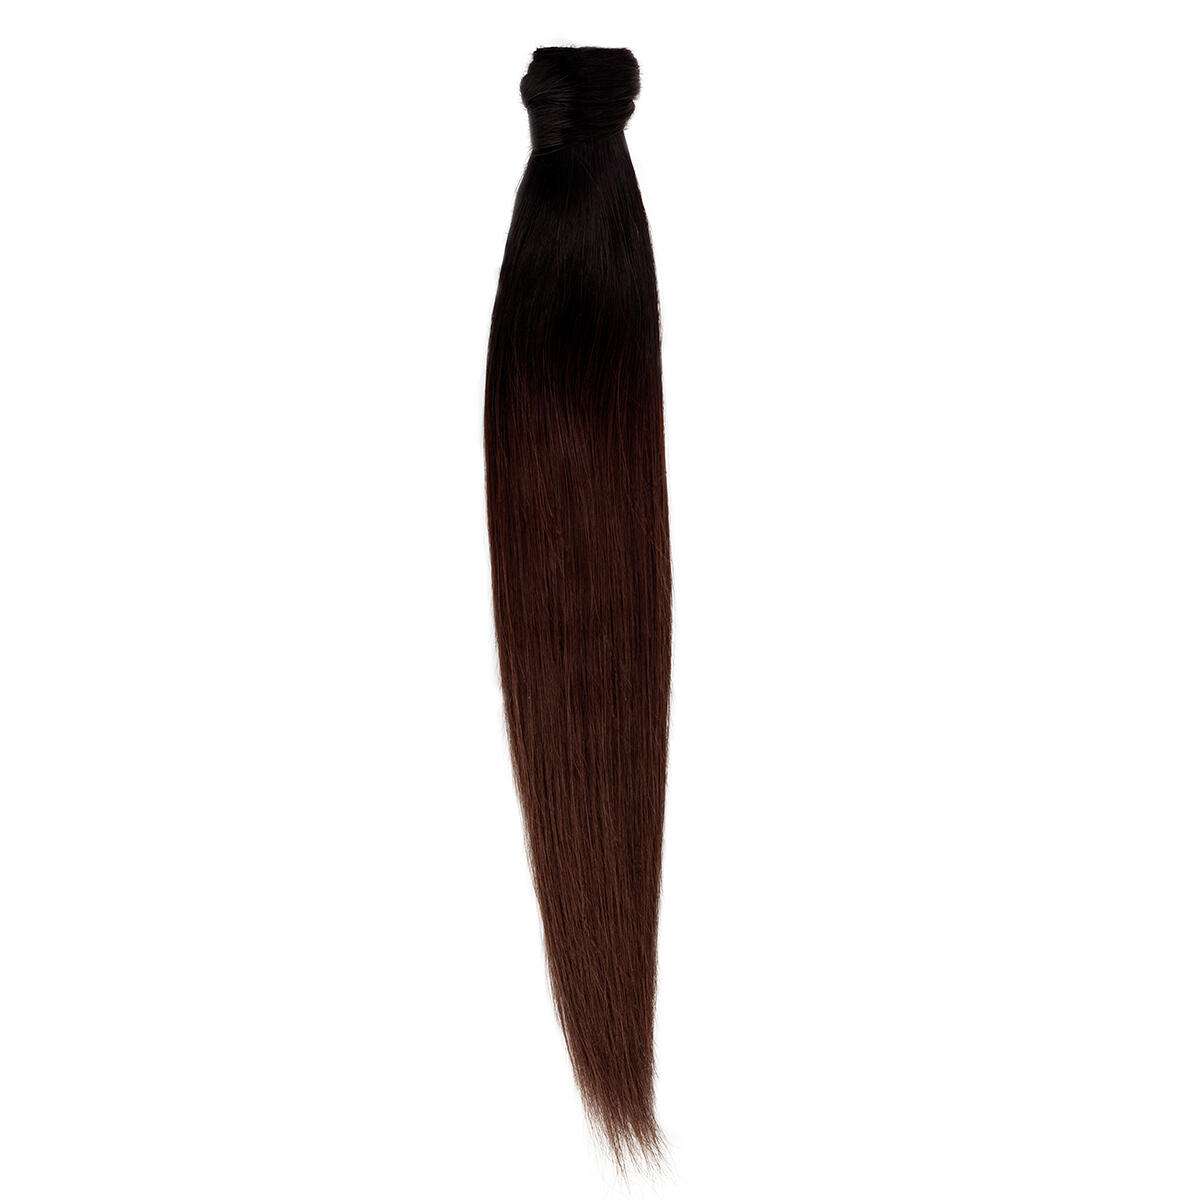 Clip-in Ponytail Original O1.2/2.0 Black Brown Ombre 40 cm